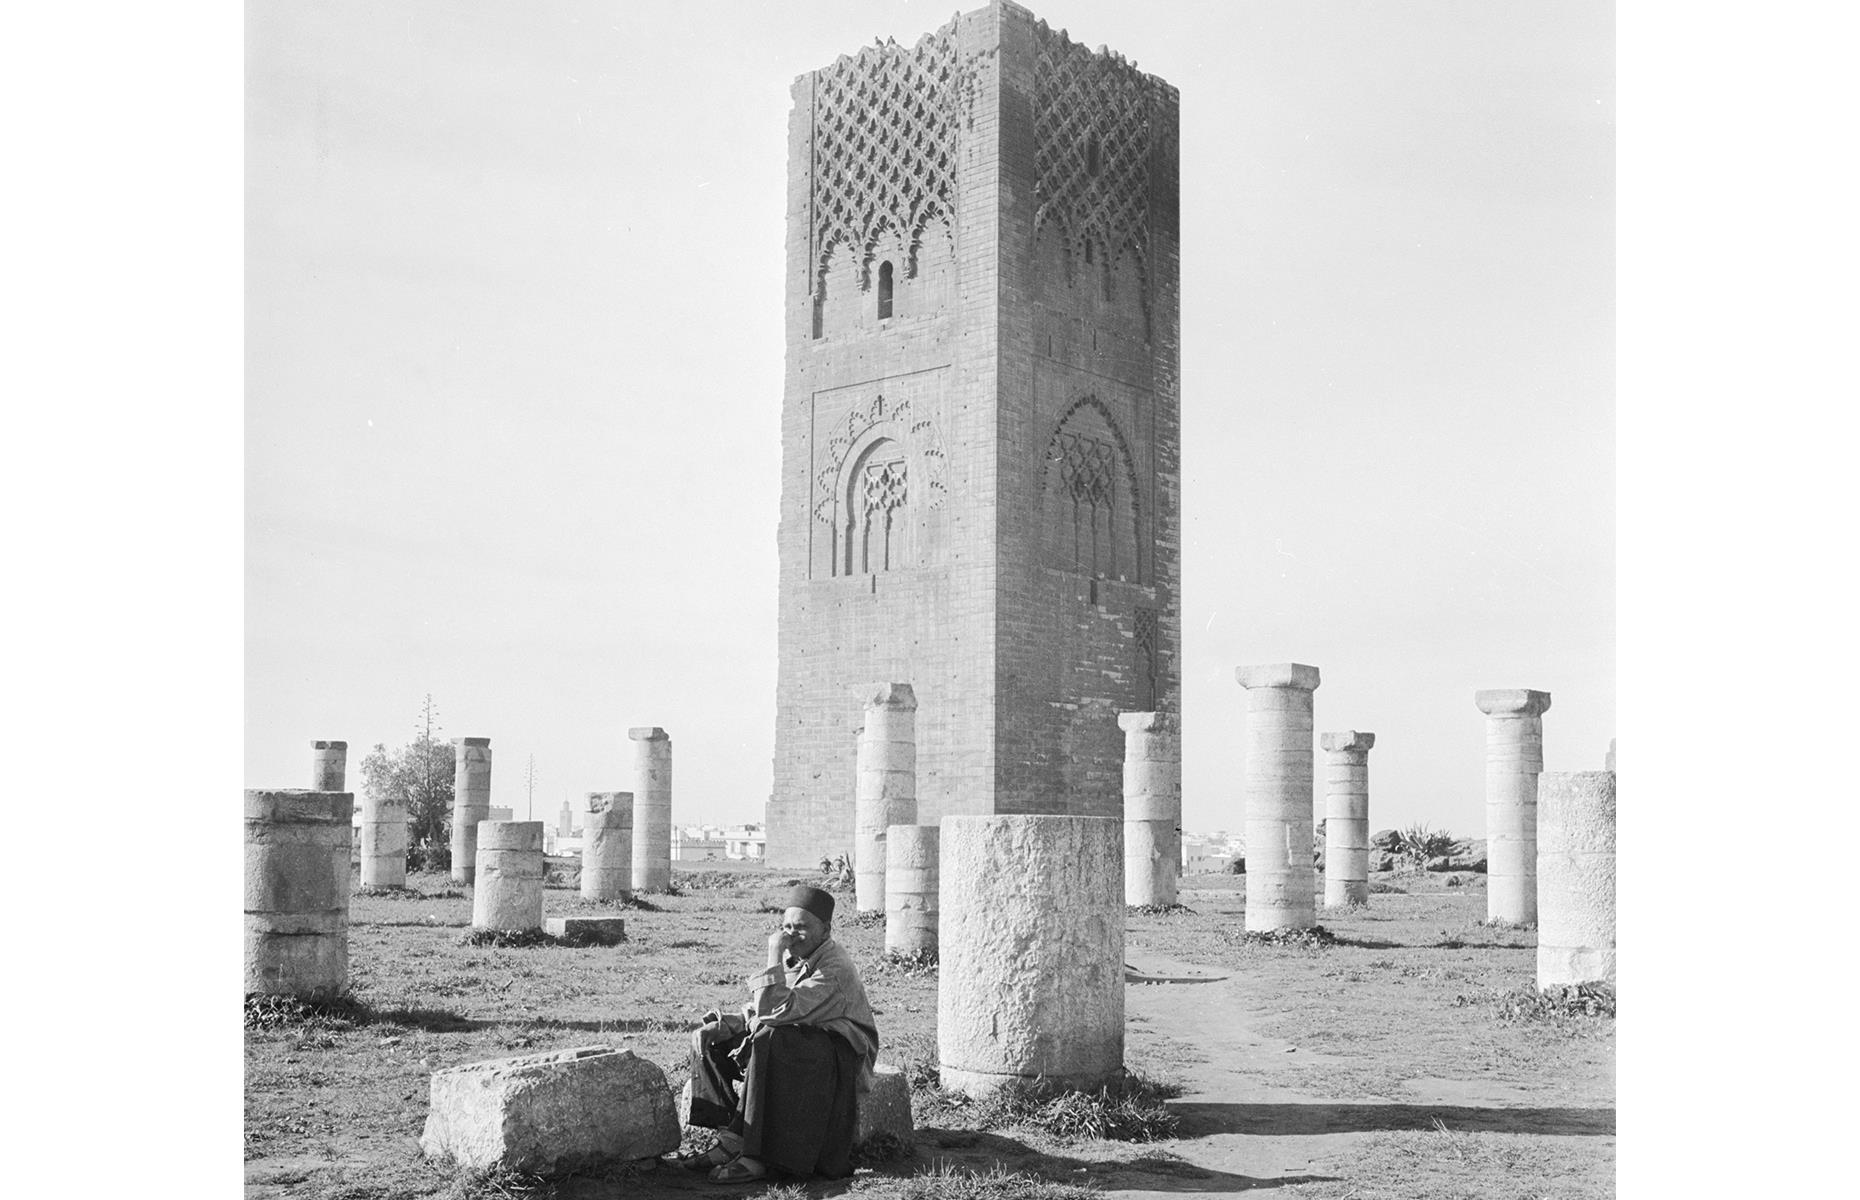 Slide 4 of 31: The Hassan Tower, in Morocco's capital, was an ambitious project dreamt up in the 12th century by Caliph Abu Yusuf Yaqub al-Mansur, who ruled from 1184–99. The caliph was well known for his grandiose building plans and this Rabat tower was to be the mother of them all. It was intended to be part of a titanic mosque – the largest in the world in fact – and it would be the biggest minaret on the planet too. Building began in 1195.